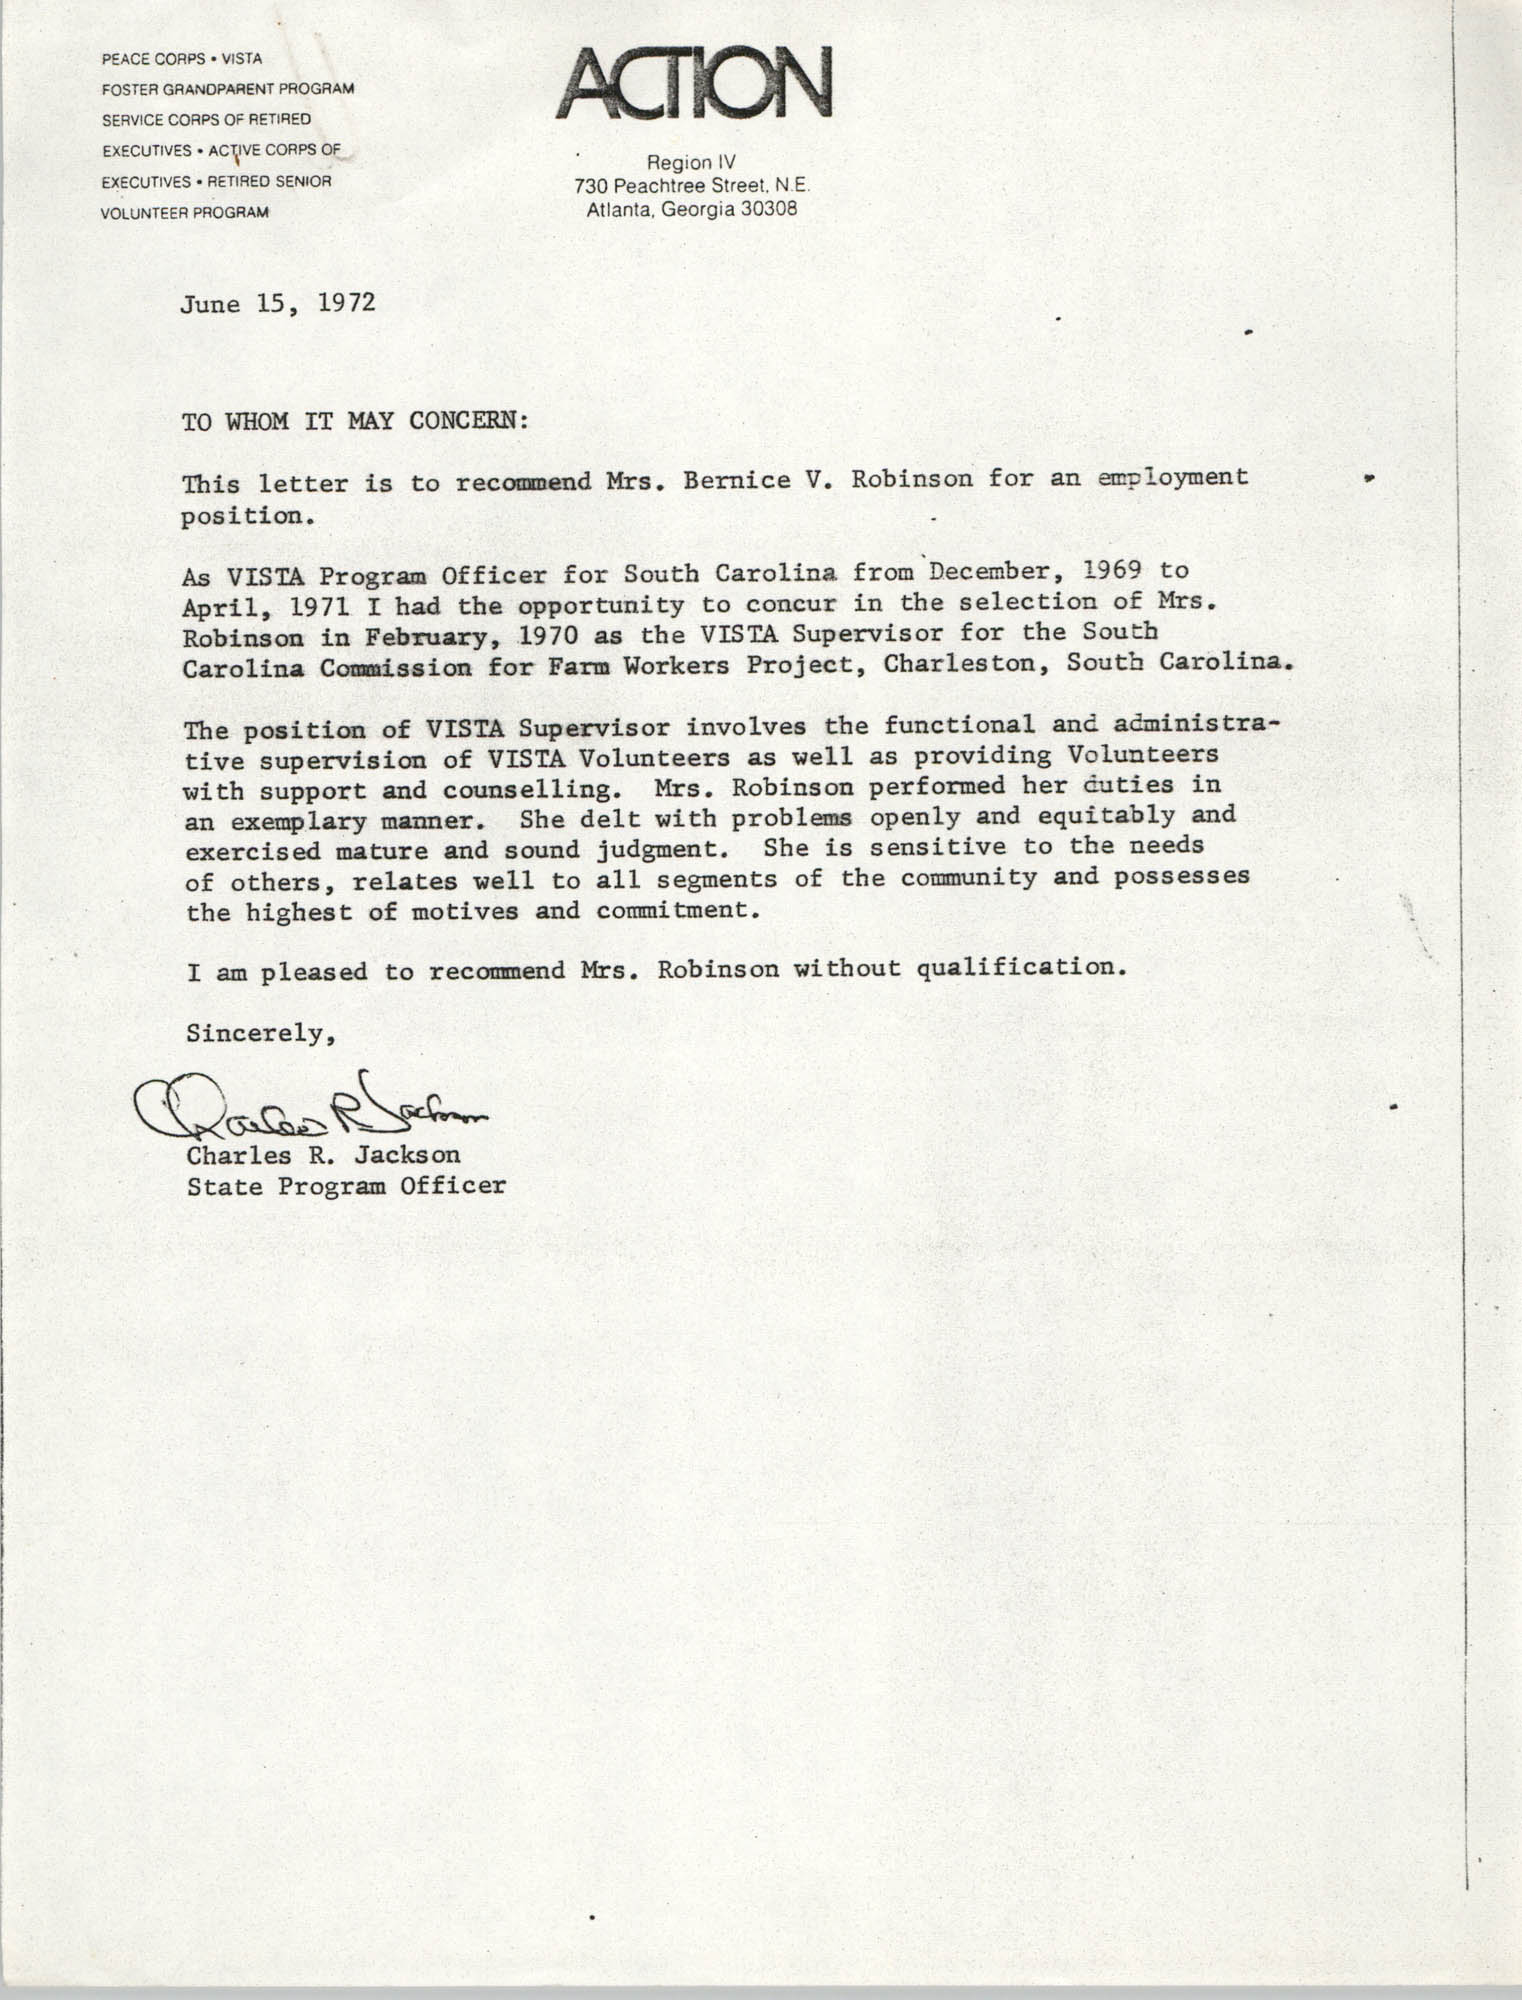 Letter from Charles R. Jackson to Action Region IV, June 15, 1971